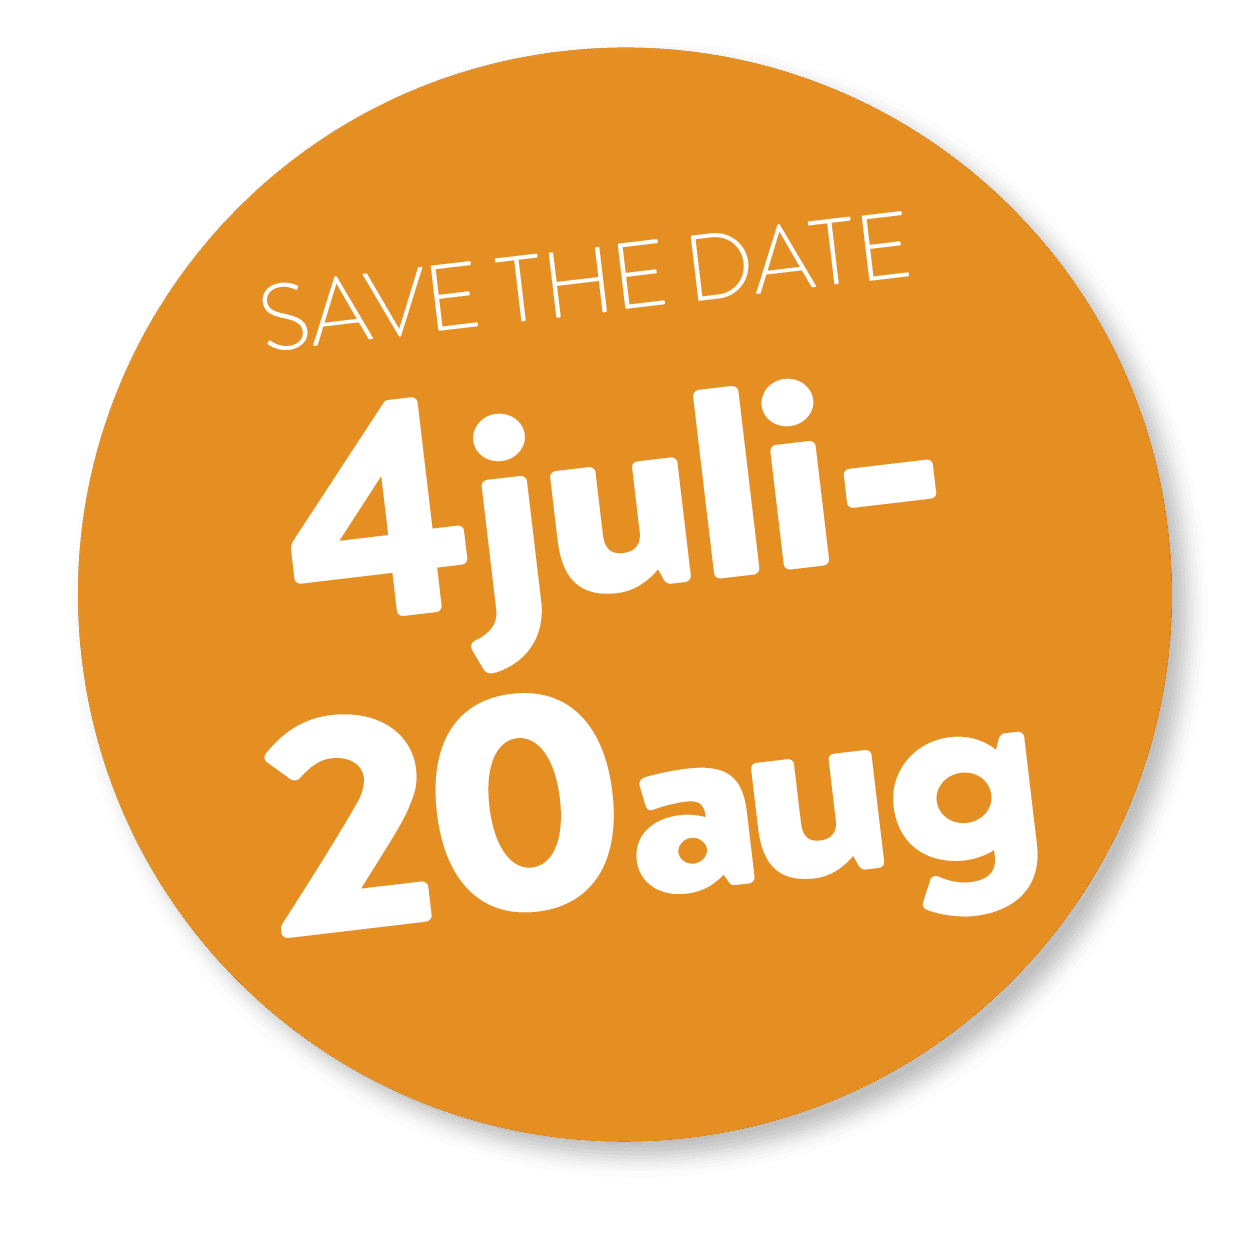 save the date 4 juli 20 aug